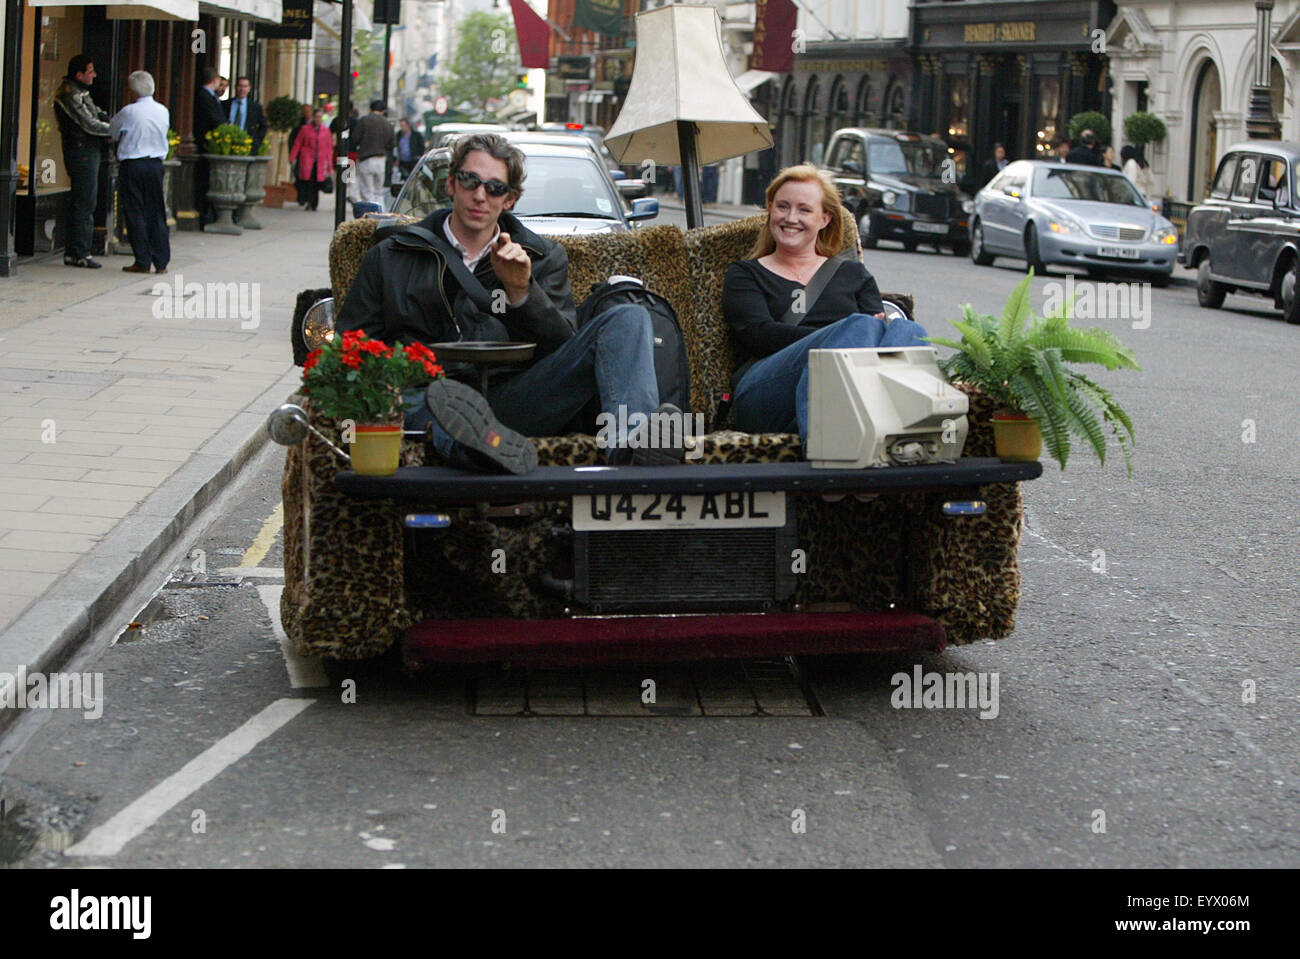 Edd China Back In 2003 In Bond Street London On His Sofa